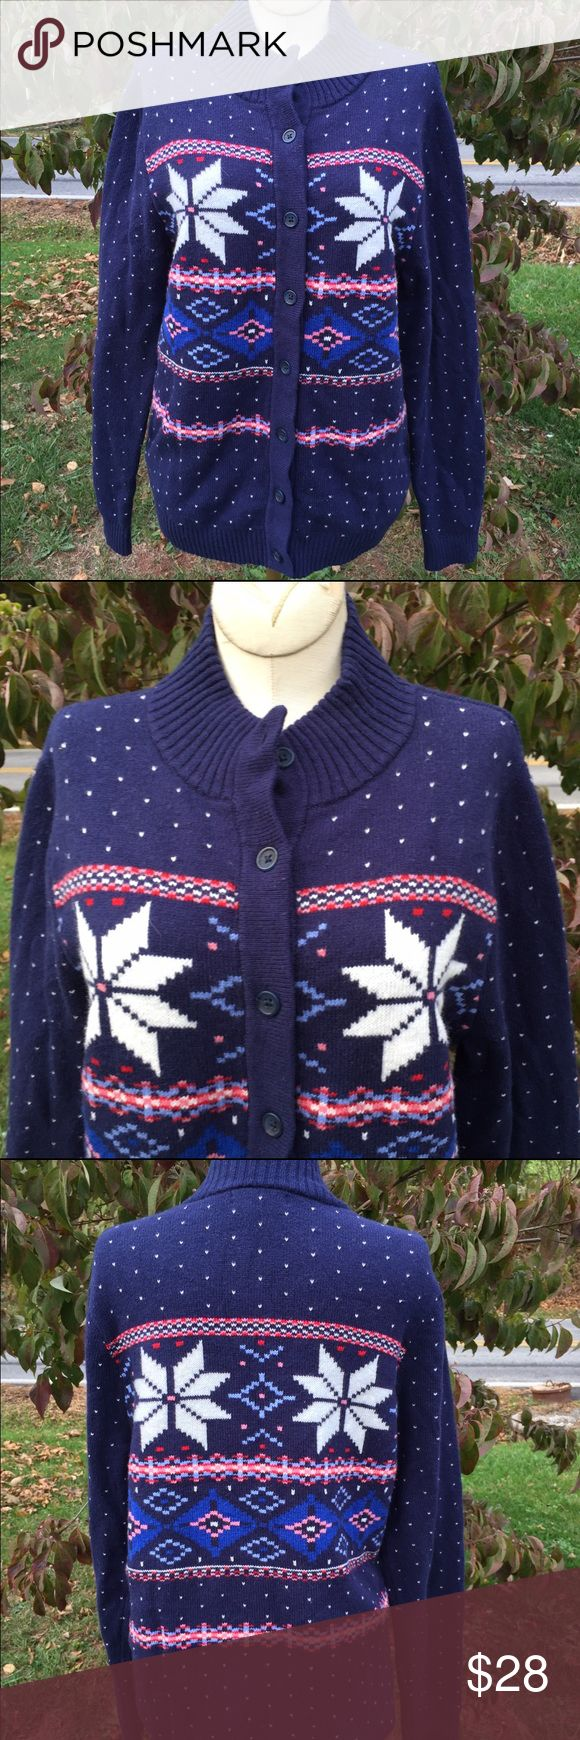 Lands' End Christmas Theme Cardigan Sweater Size medium. Great for the Christmas season Lands' End Sweaters Cardigans